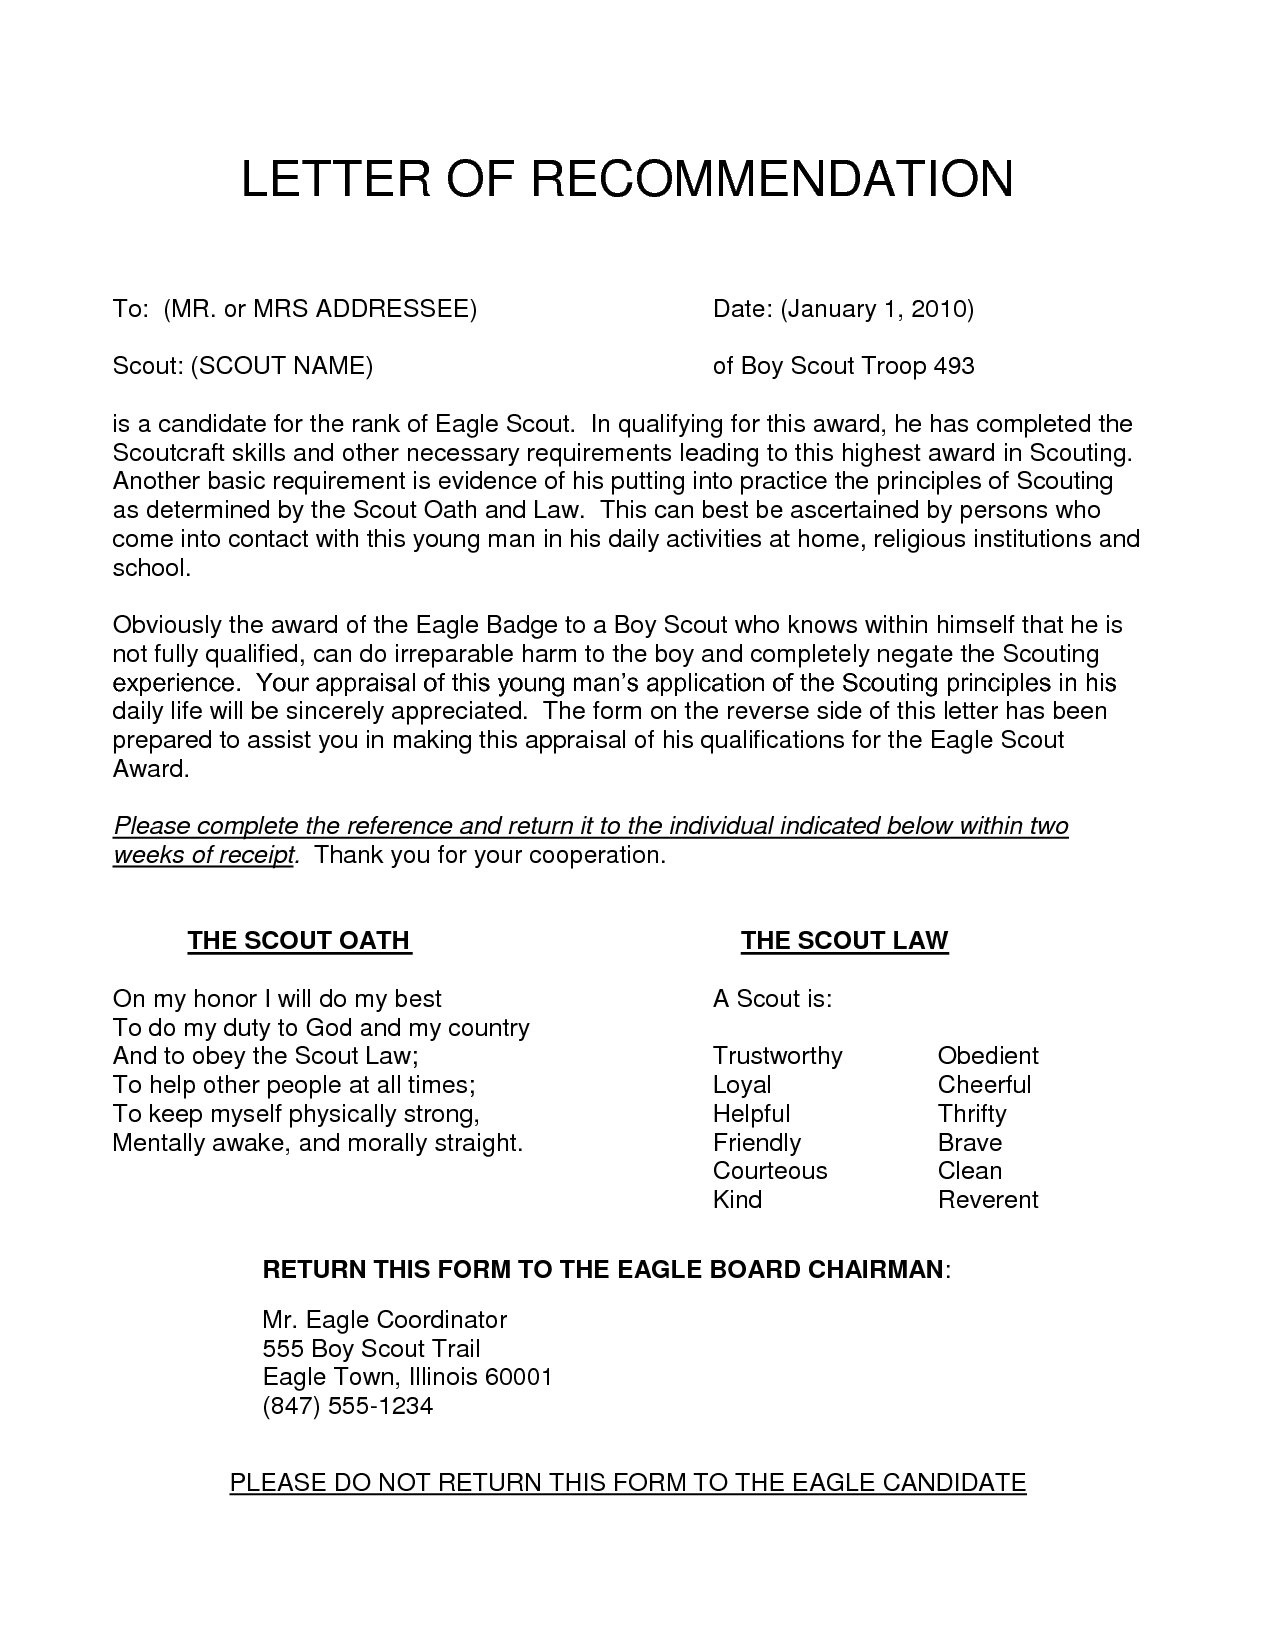 Eagle scout recommendation letter template examples letter templates eagle scout recommendation letter template content 2016 10 eagle scout expocarfo Choice Image